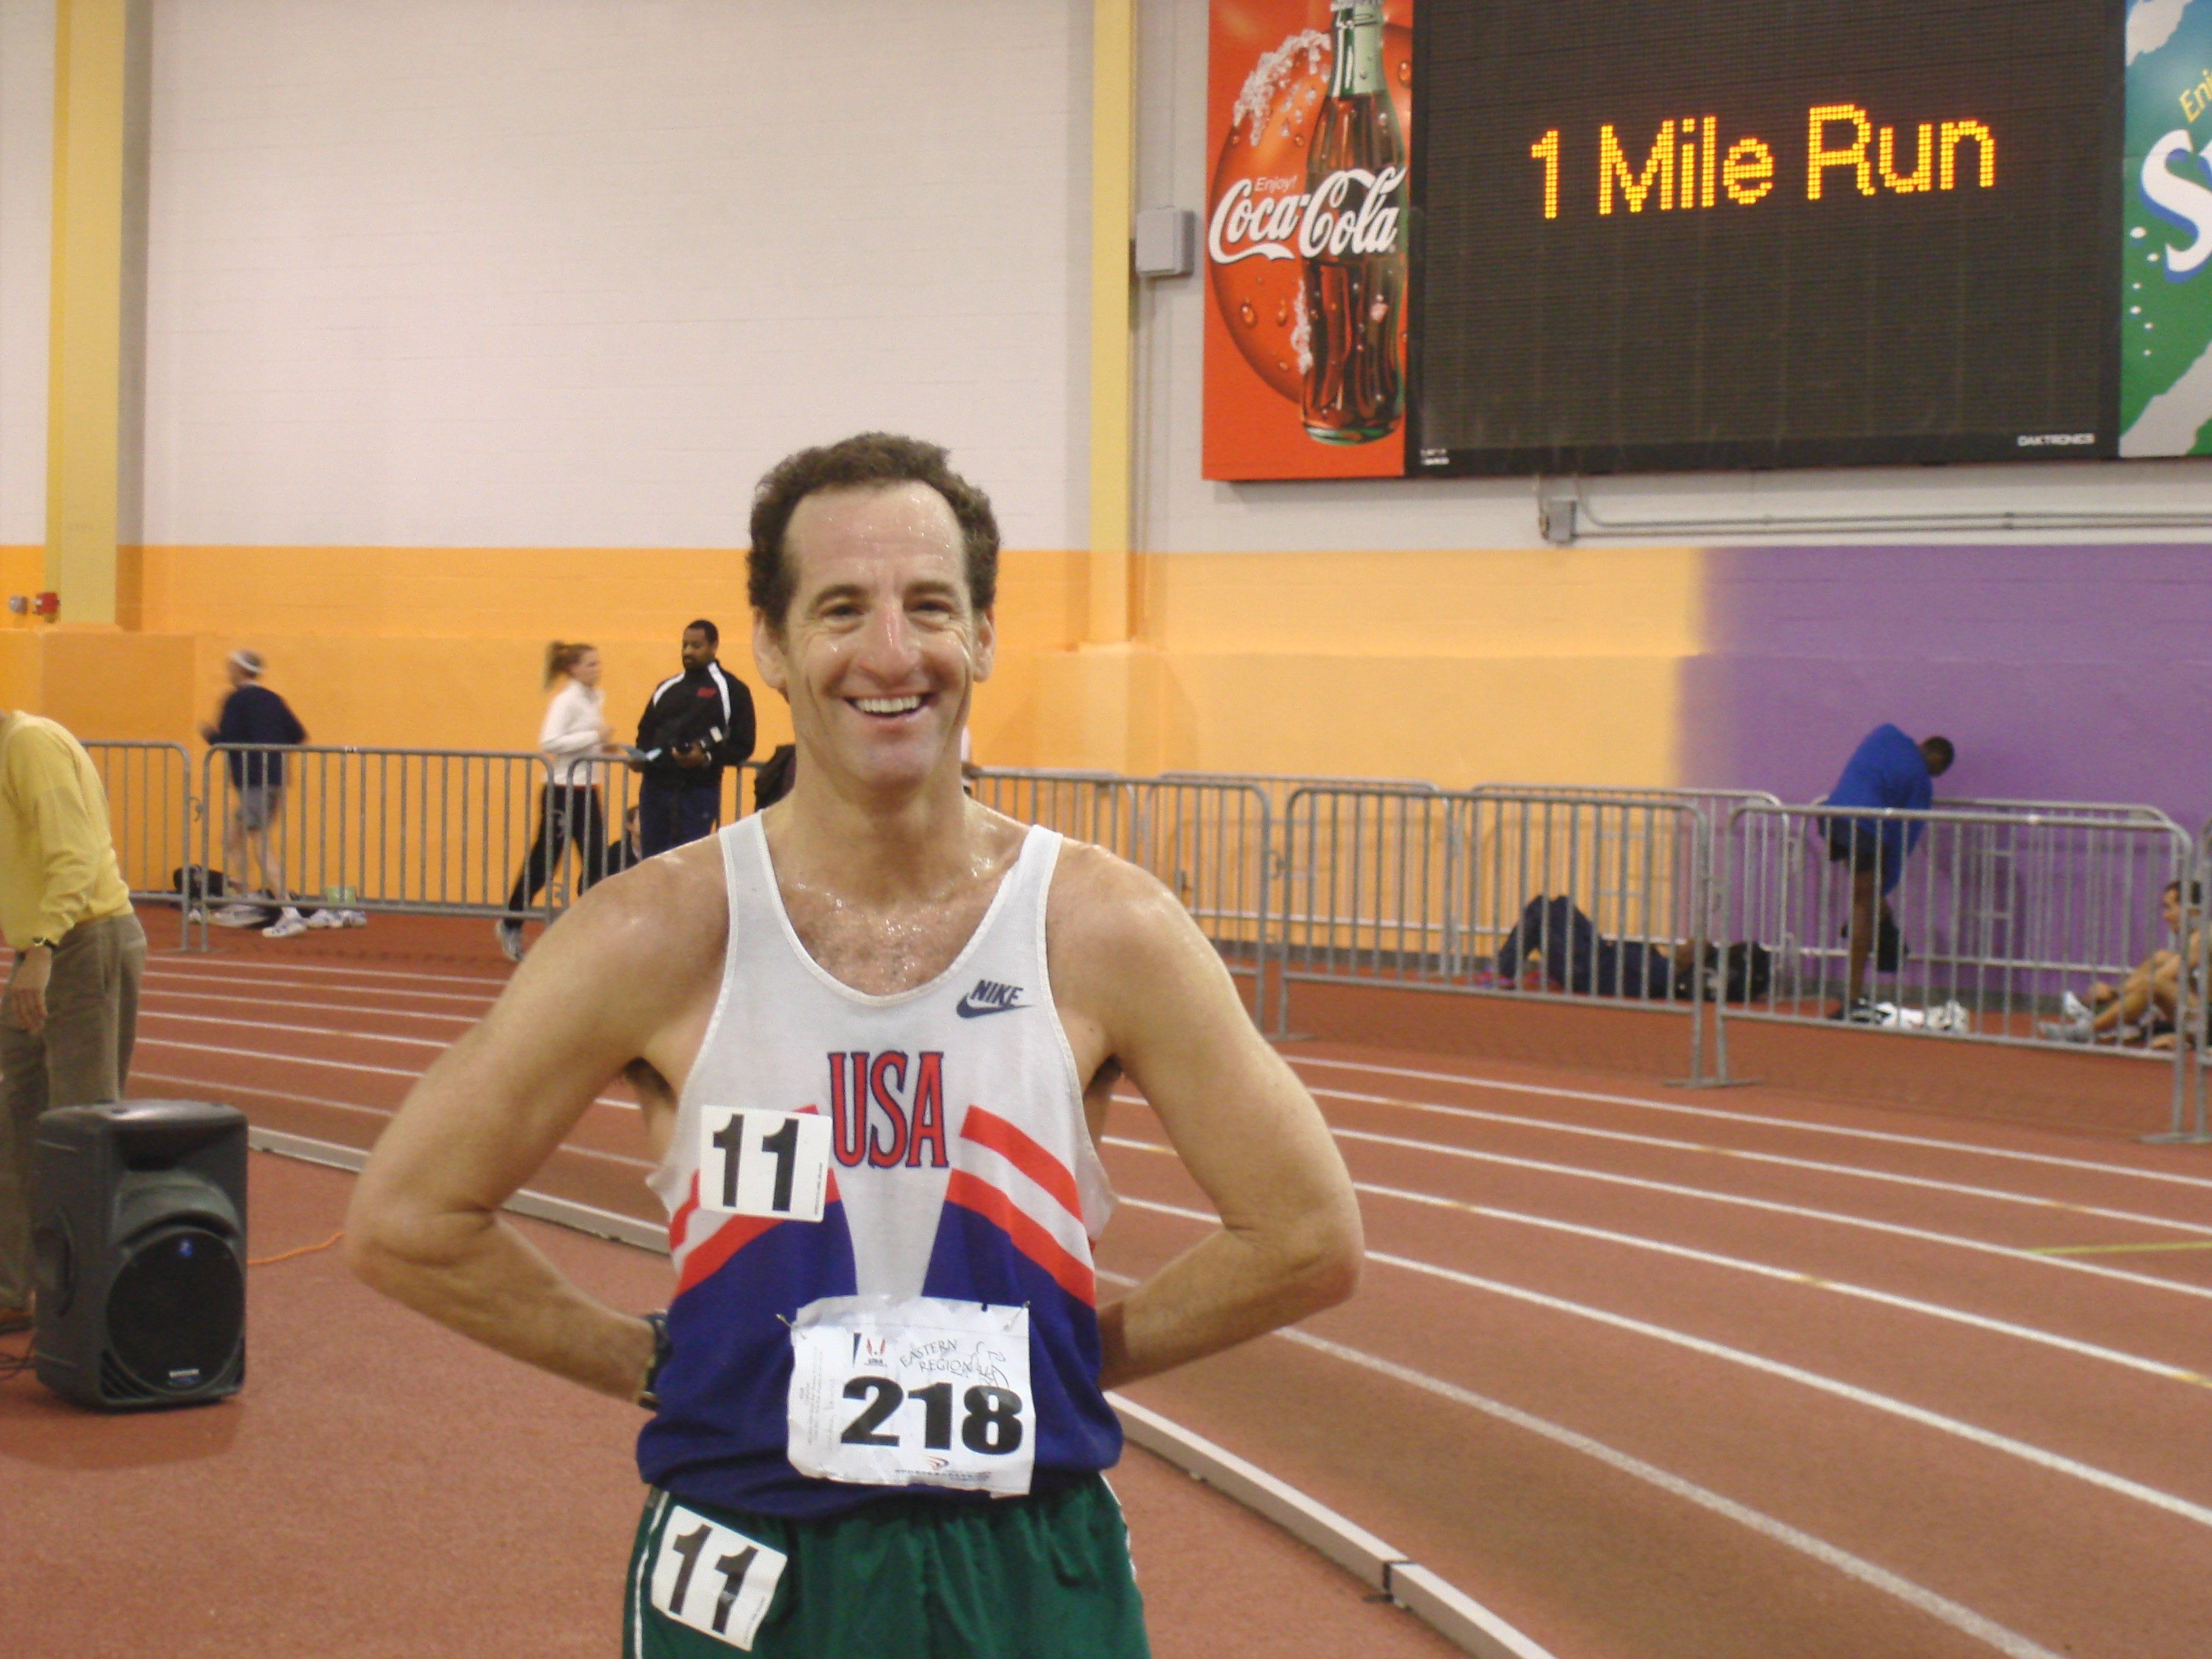 Doug Landau, TheAthletesLawyer, after running the mile at the Eastern Masters Regionals at the PGSLC indoor track